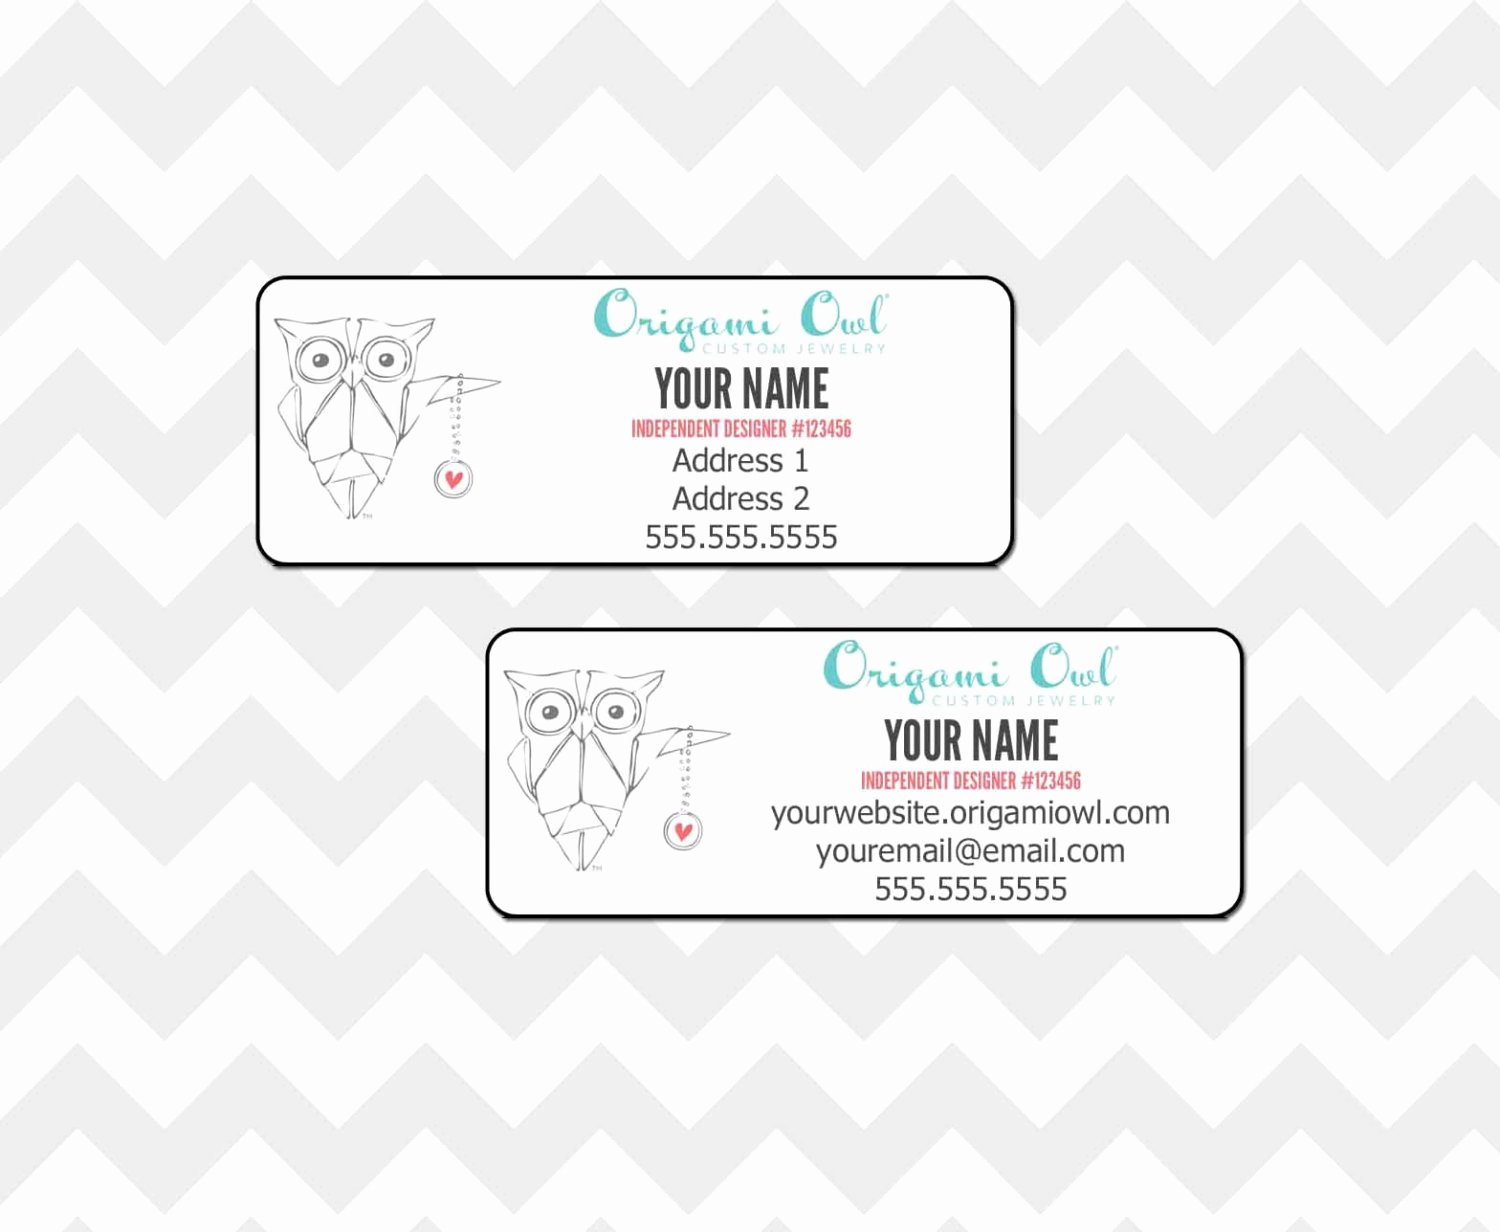 Avery Labels 48860 Unique origami Owl Return Address Label File by Blueeyeddesigns1